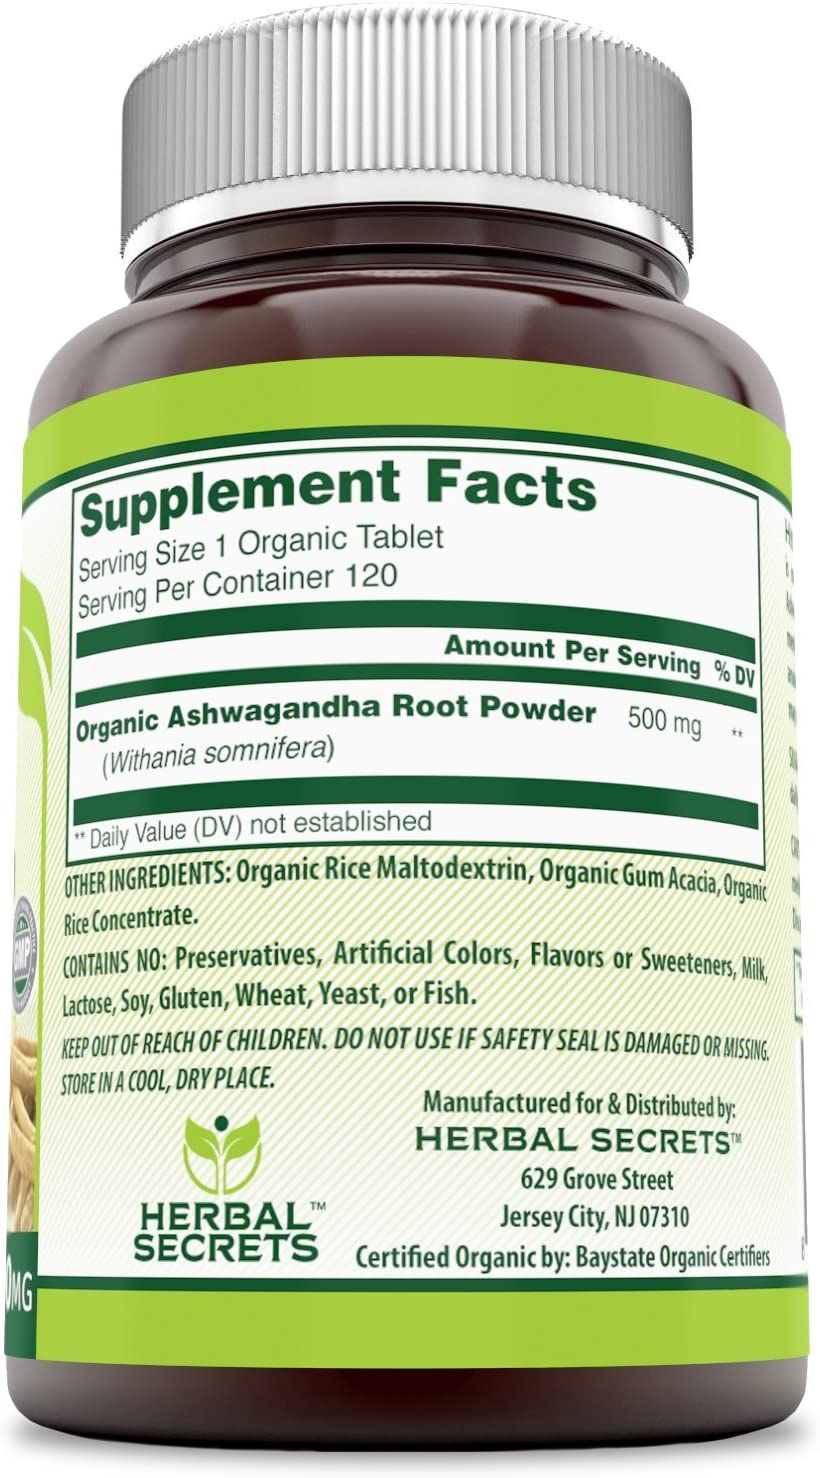 Herbal Secrets Organic Ashwagandha 500 mg 120 Organic Tablets (Non-GMO) - Supports Musculoskeletal System, Helps to Reduce Anxiety & Stress & Promotes Mental Clarity*: Health & Personal Care